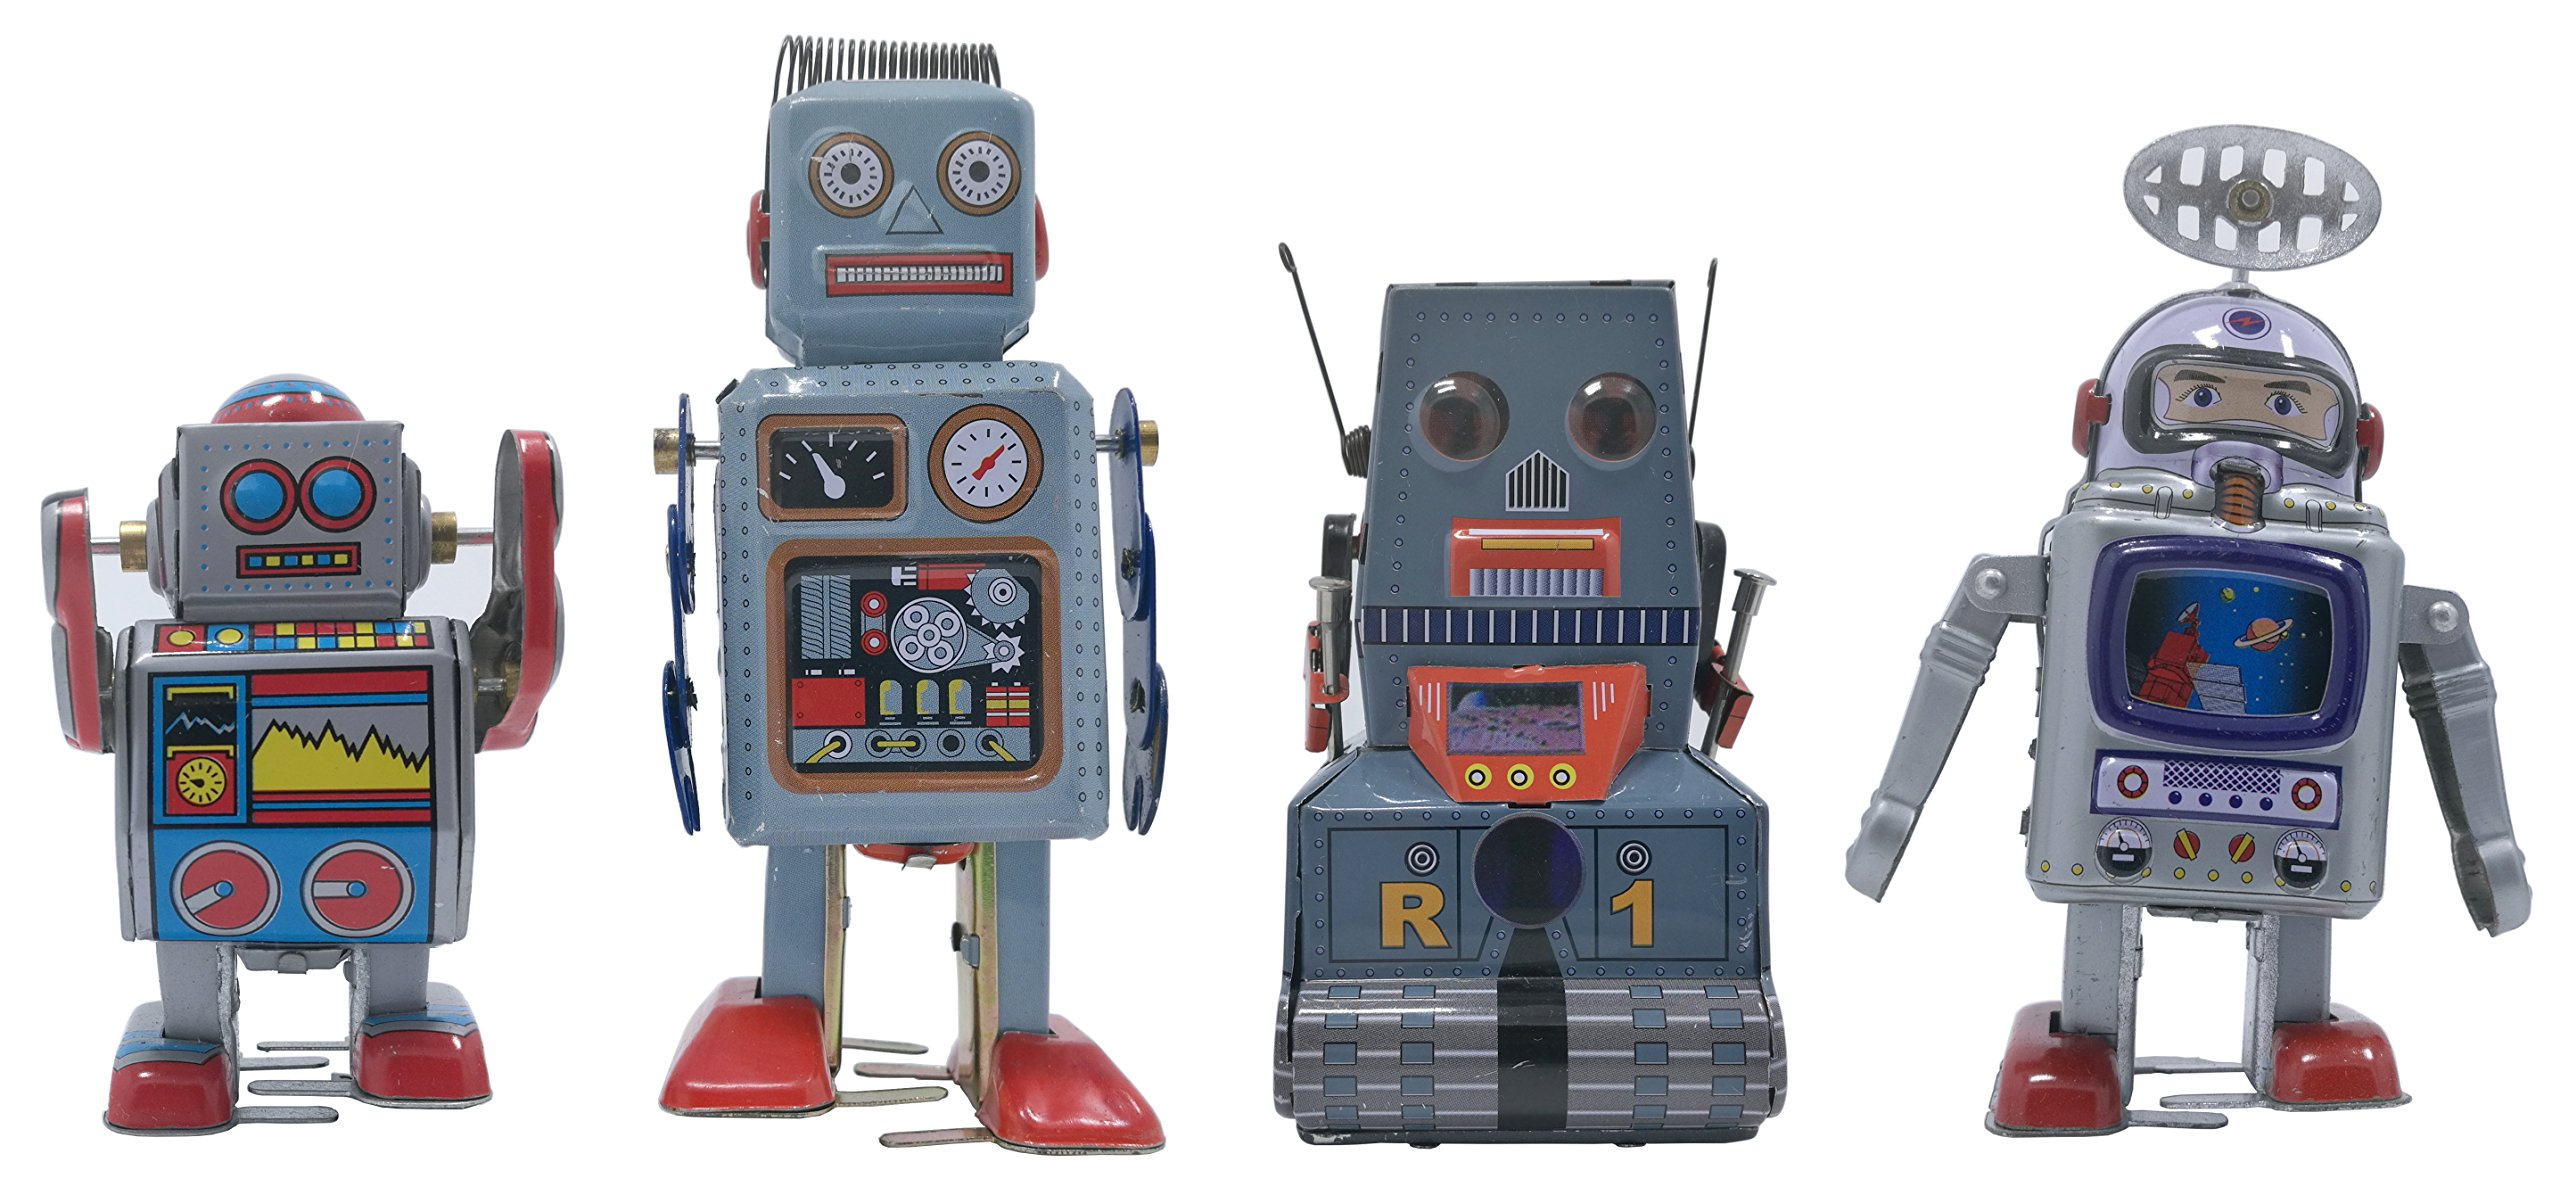 4 pcs tin toy Robot and Astronaut Collection retro 80s vintage windup metal, cool crazy nerdy gift